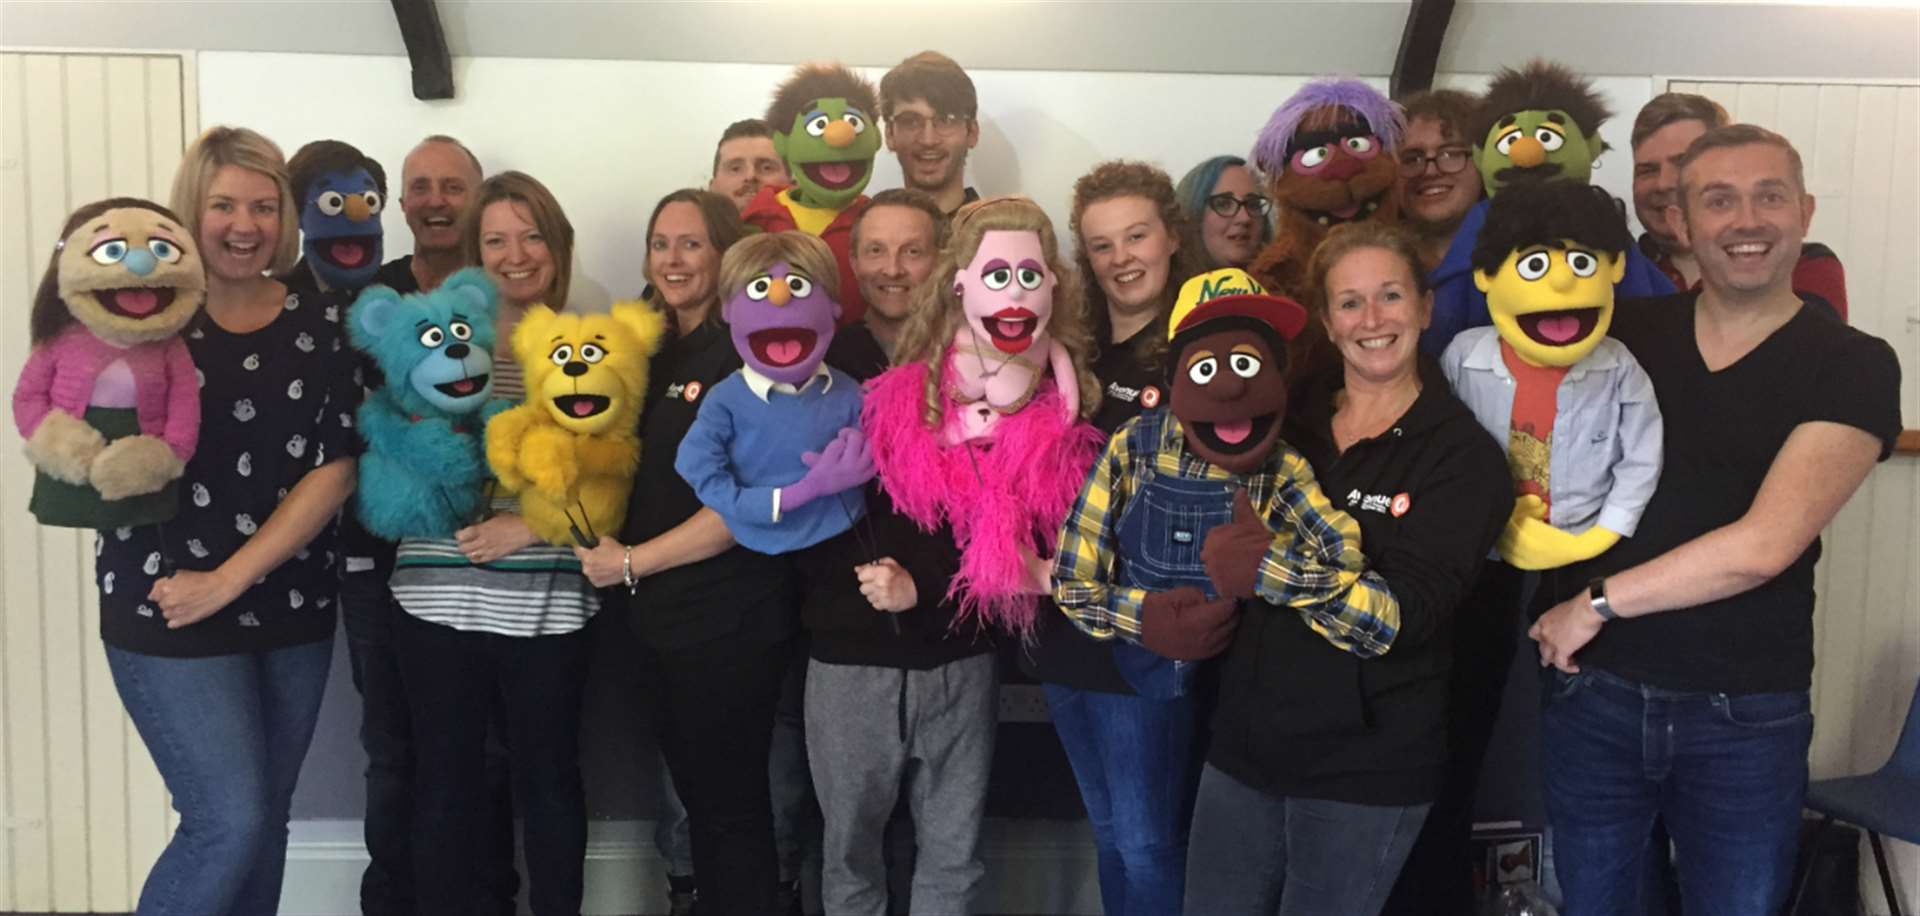 Plenty of humour in a great visit to Avenue Q